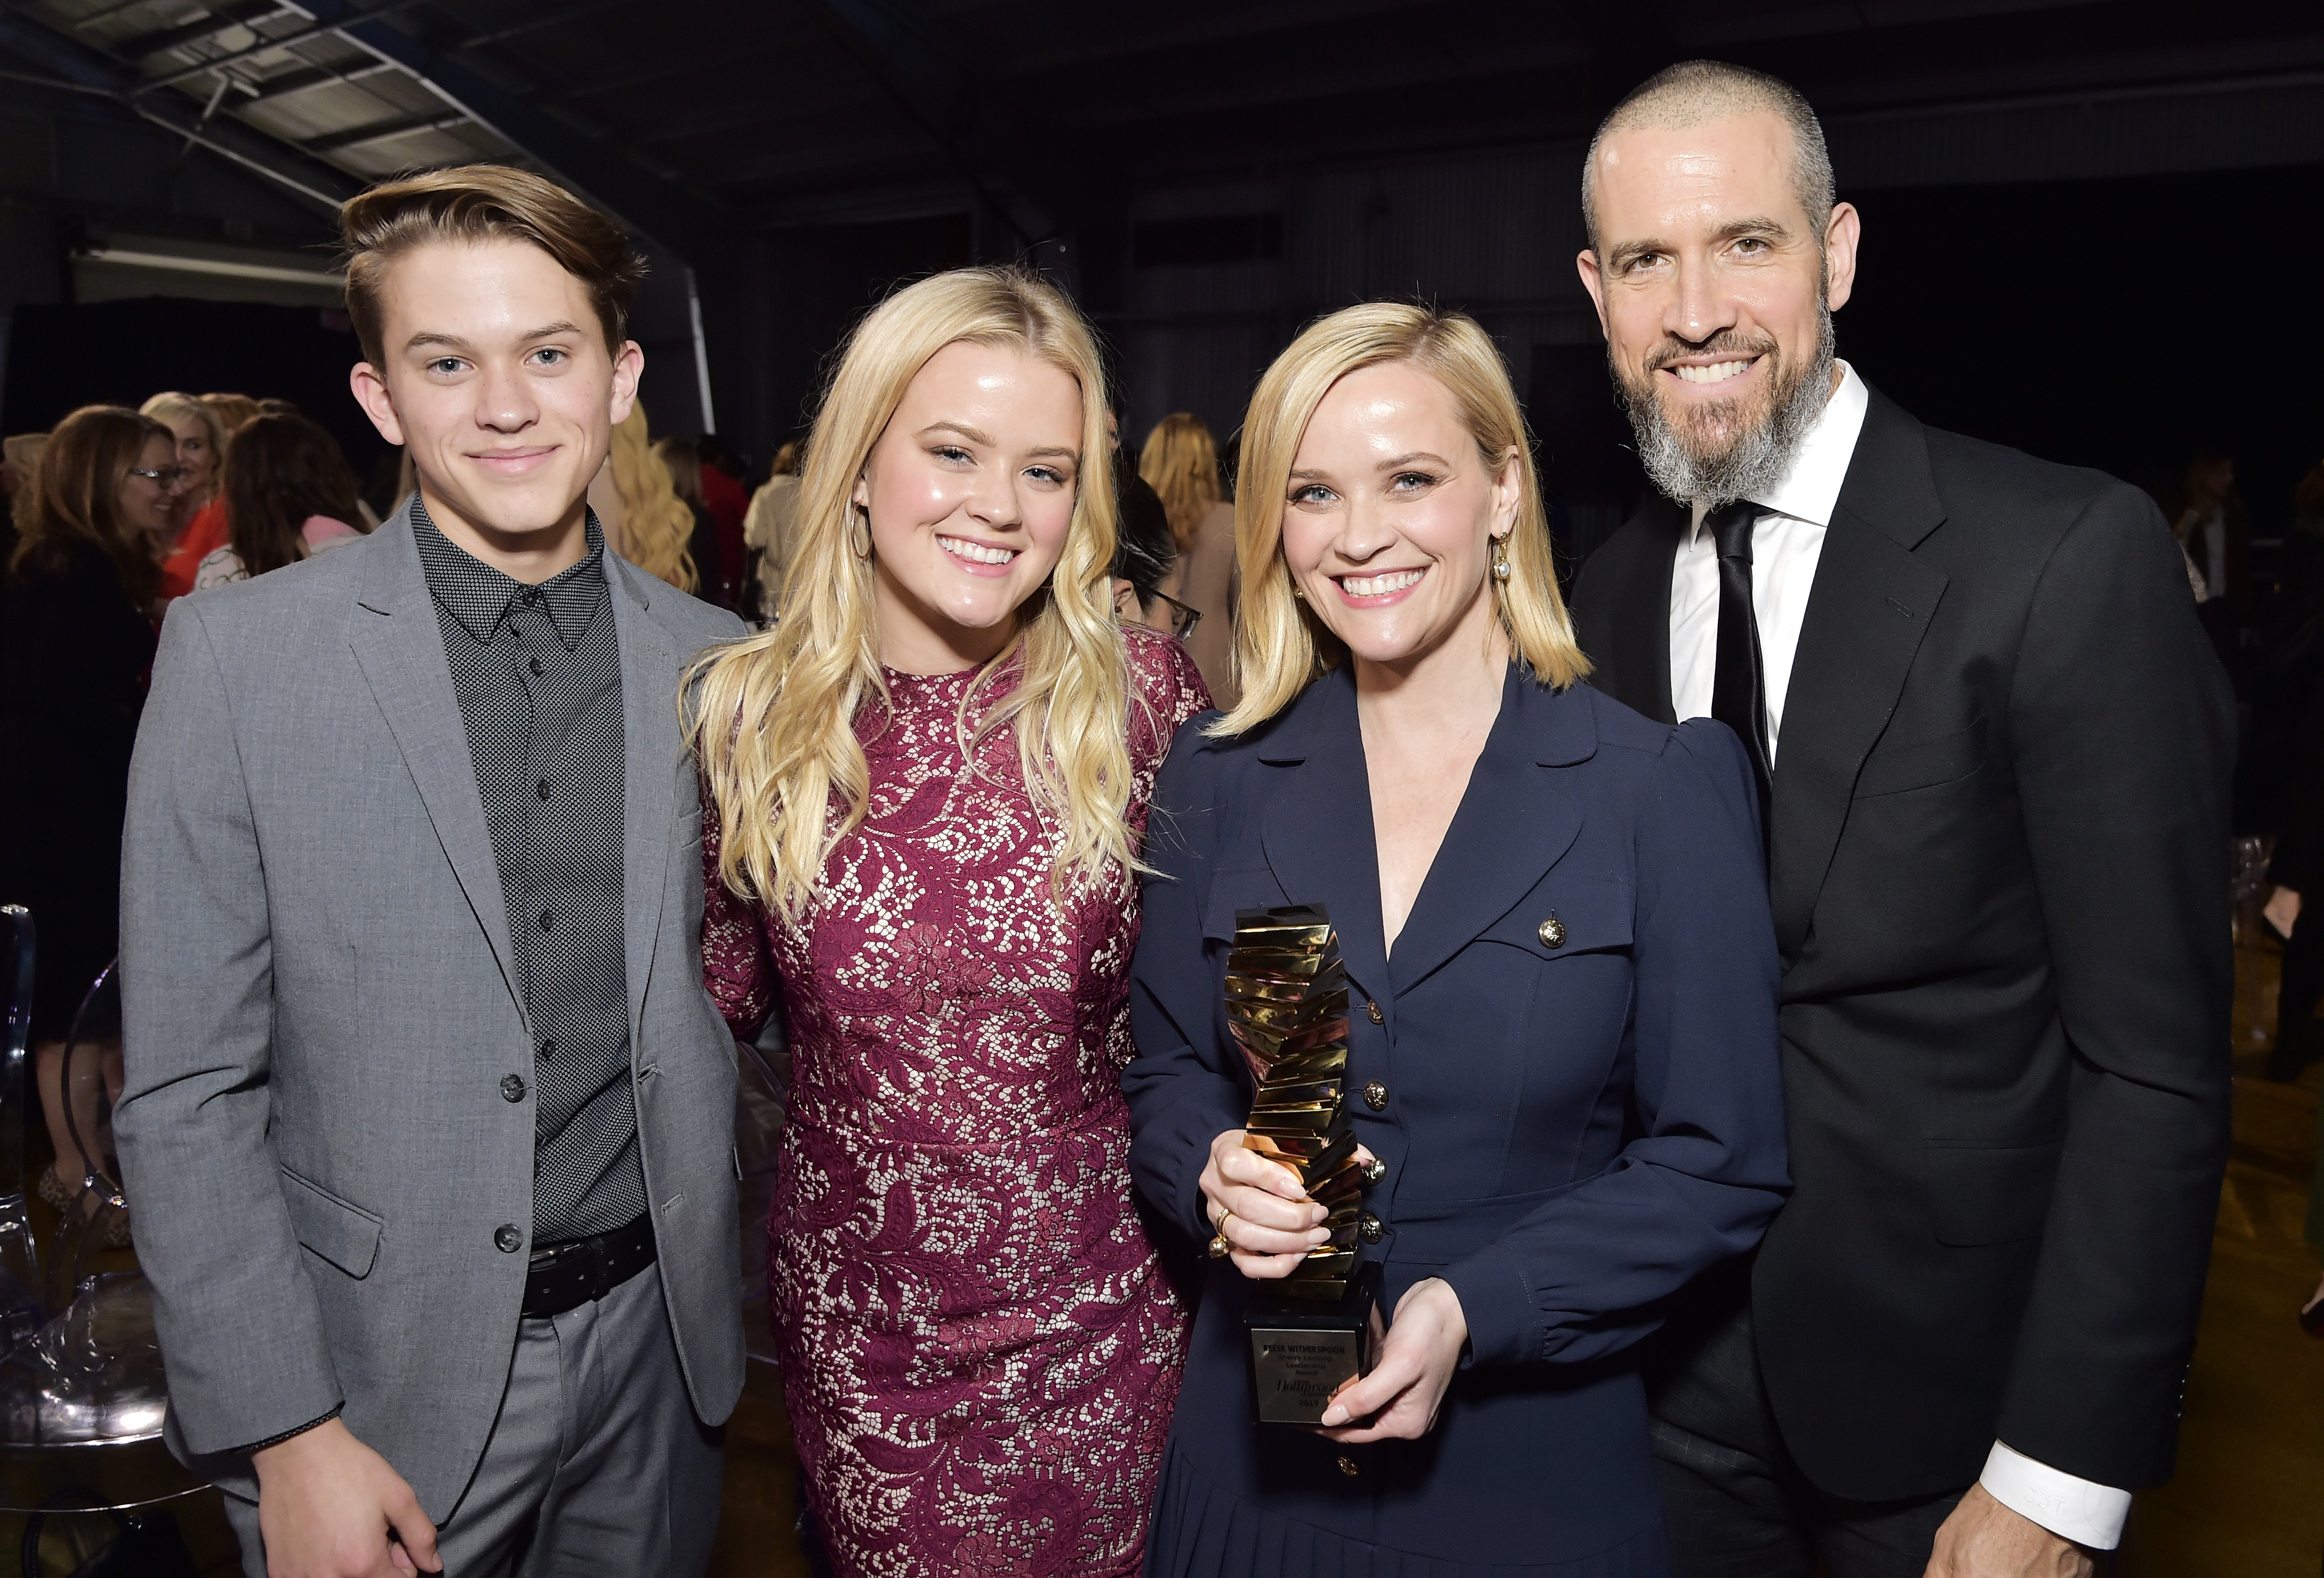 Deacon Reese Phillippe, Ava Elizabeth Phillippe, Reese Witherspoon und Jim Toth bei The Hollywood Reporter's Power 100 Women in Entertainment am 11. Dezember 2019 in Hollywood, Kalifornien.   Quelle: Getty Images